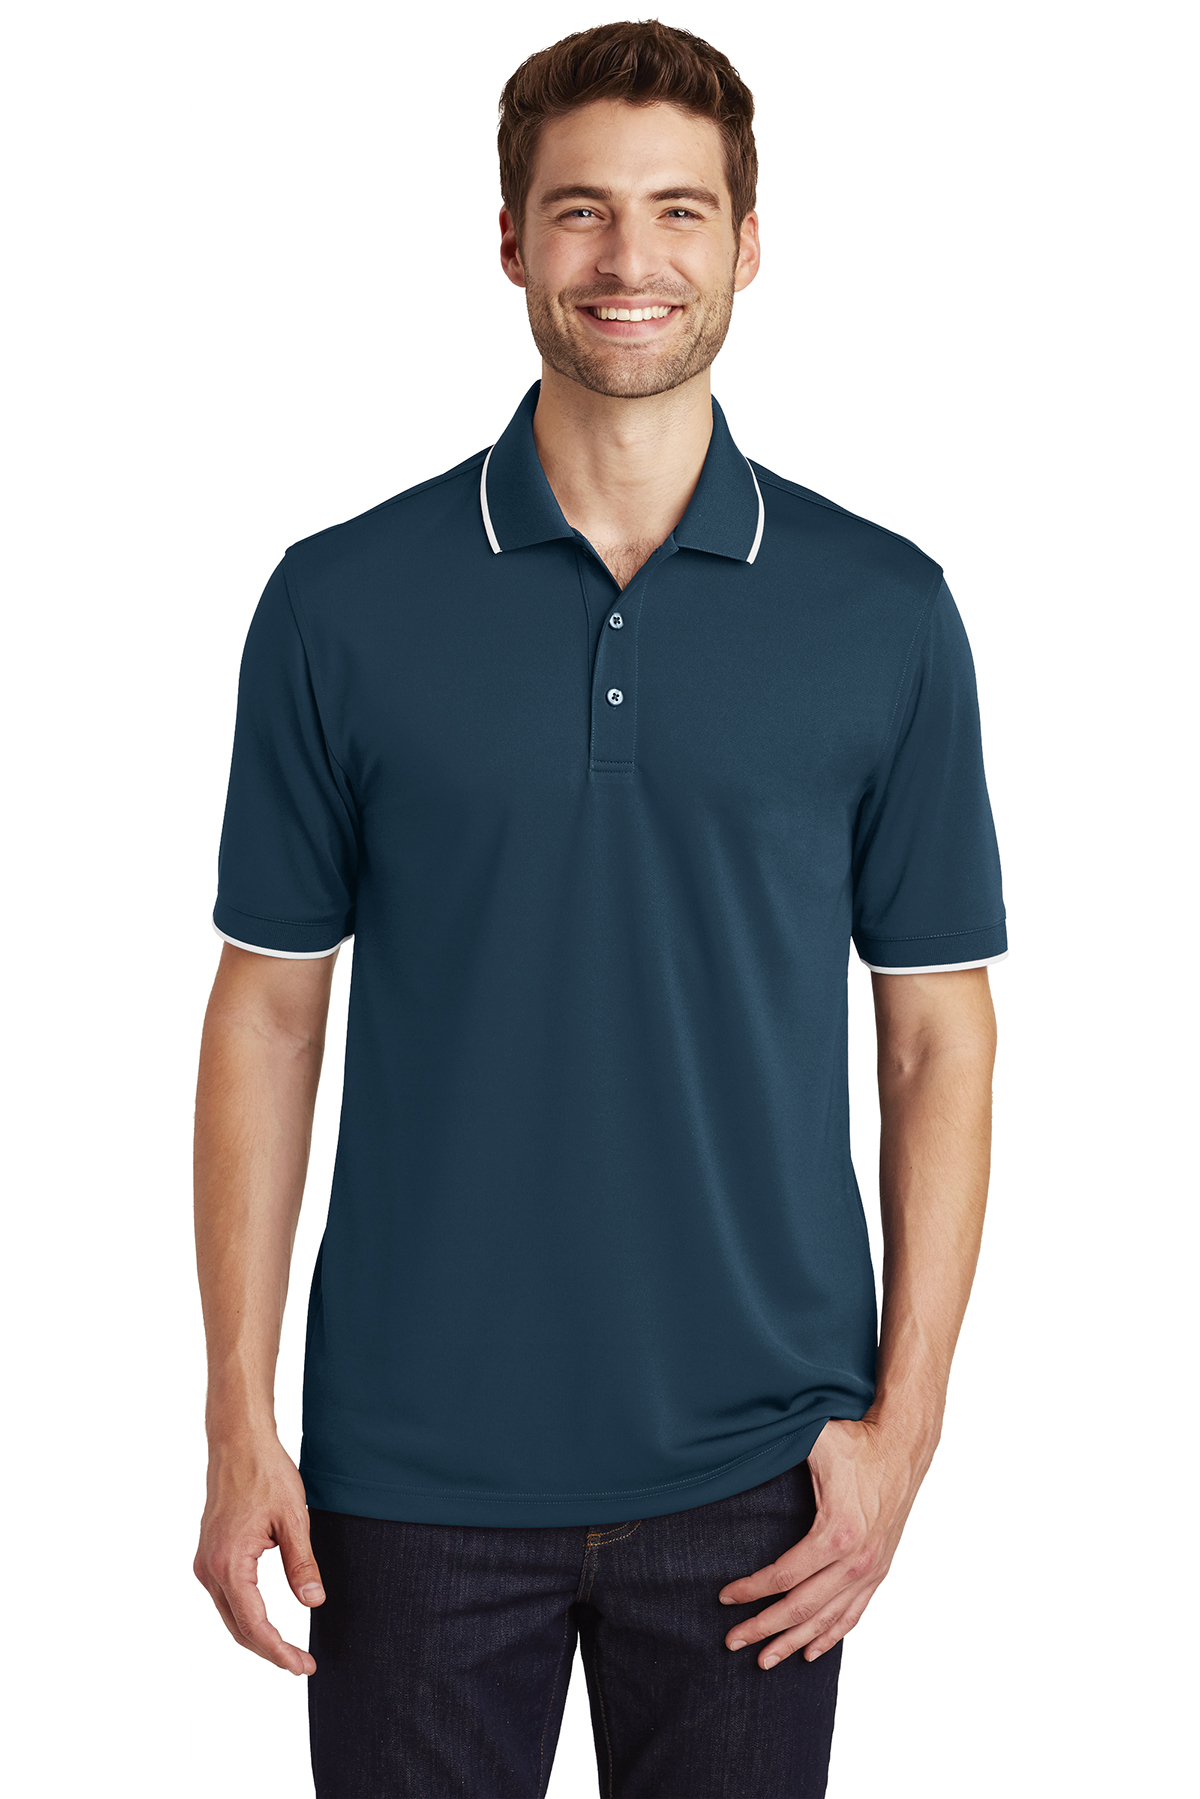 click to view River Blue Navy/ White